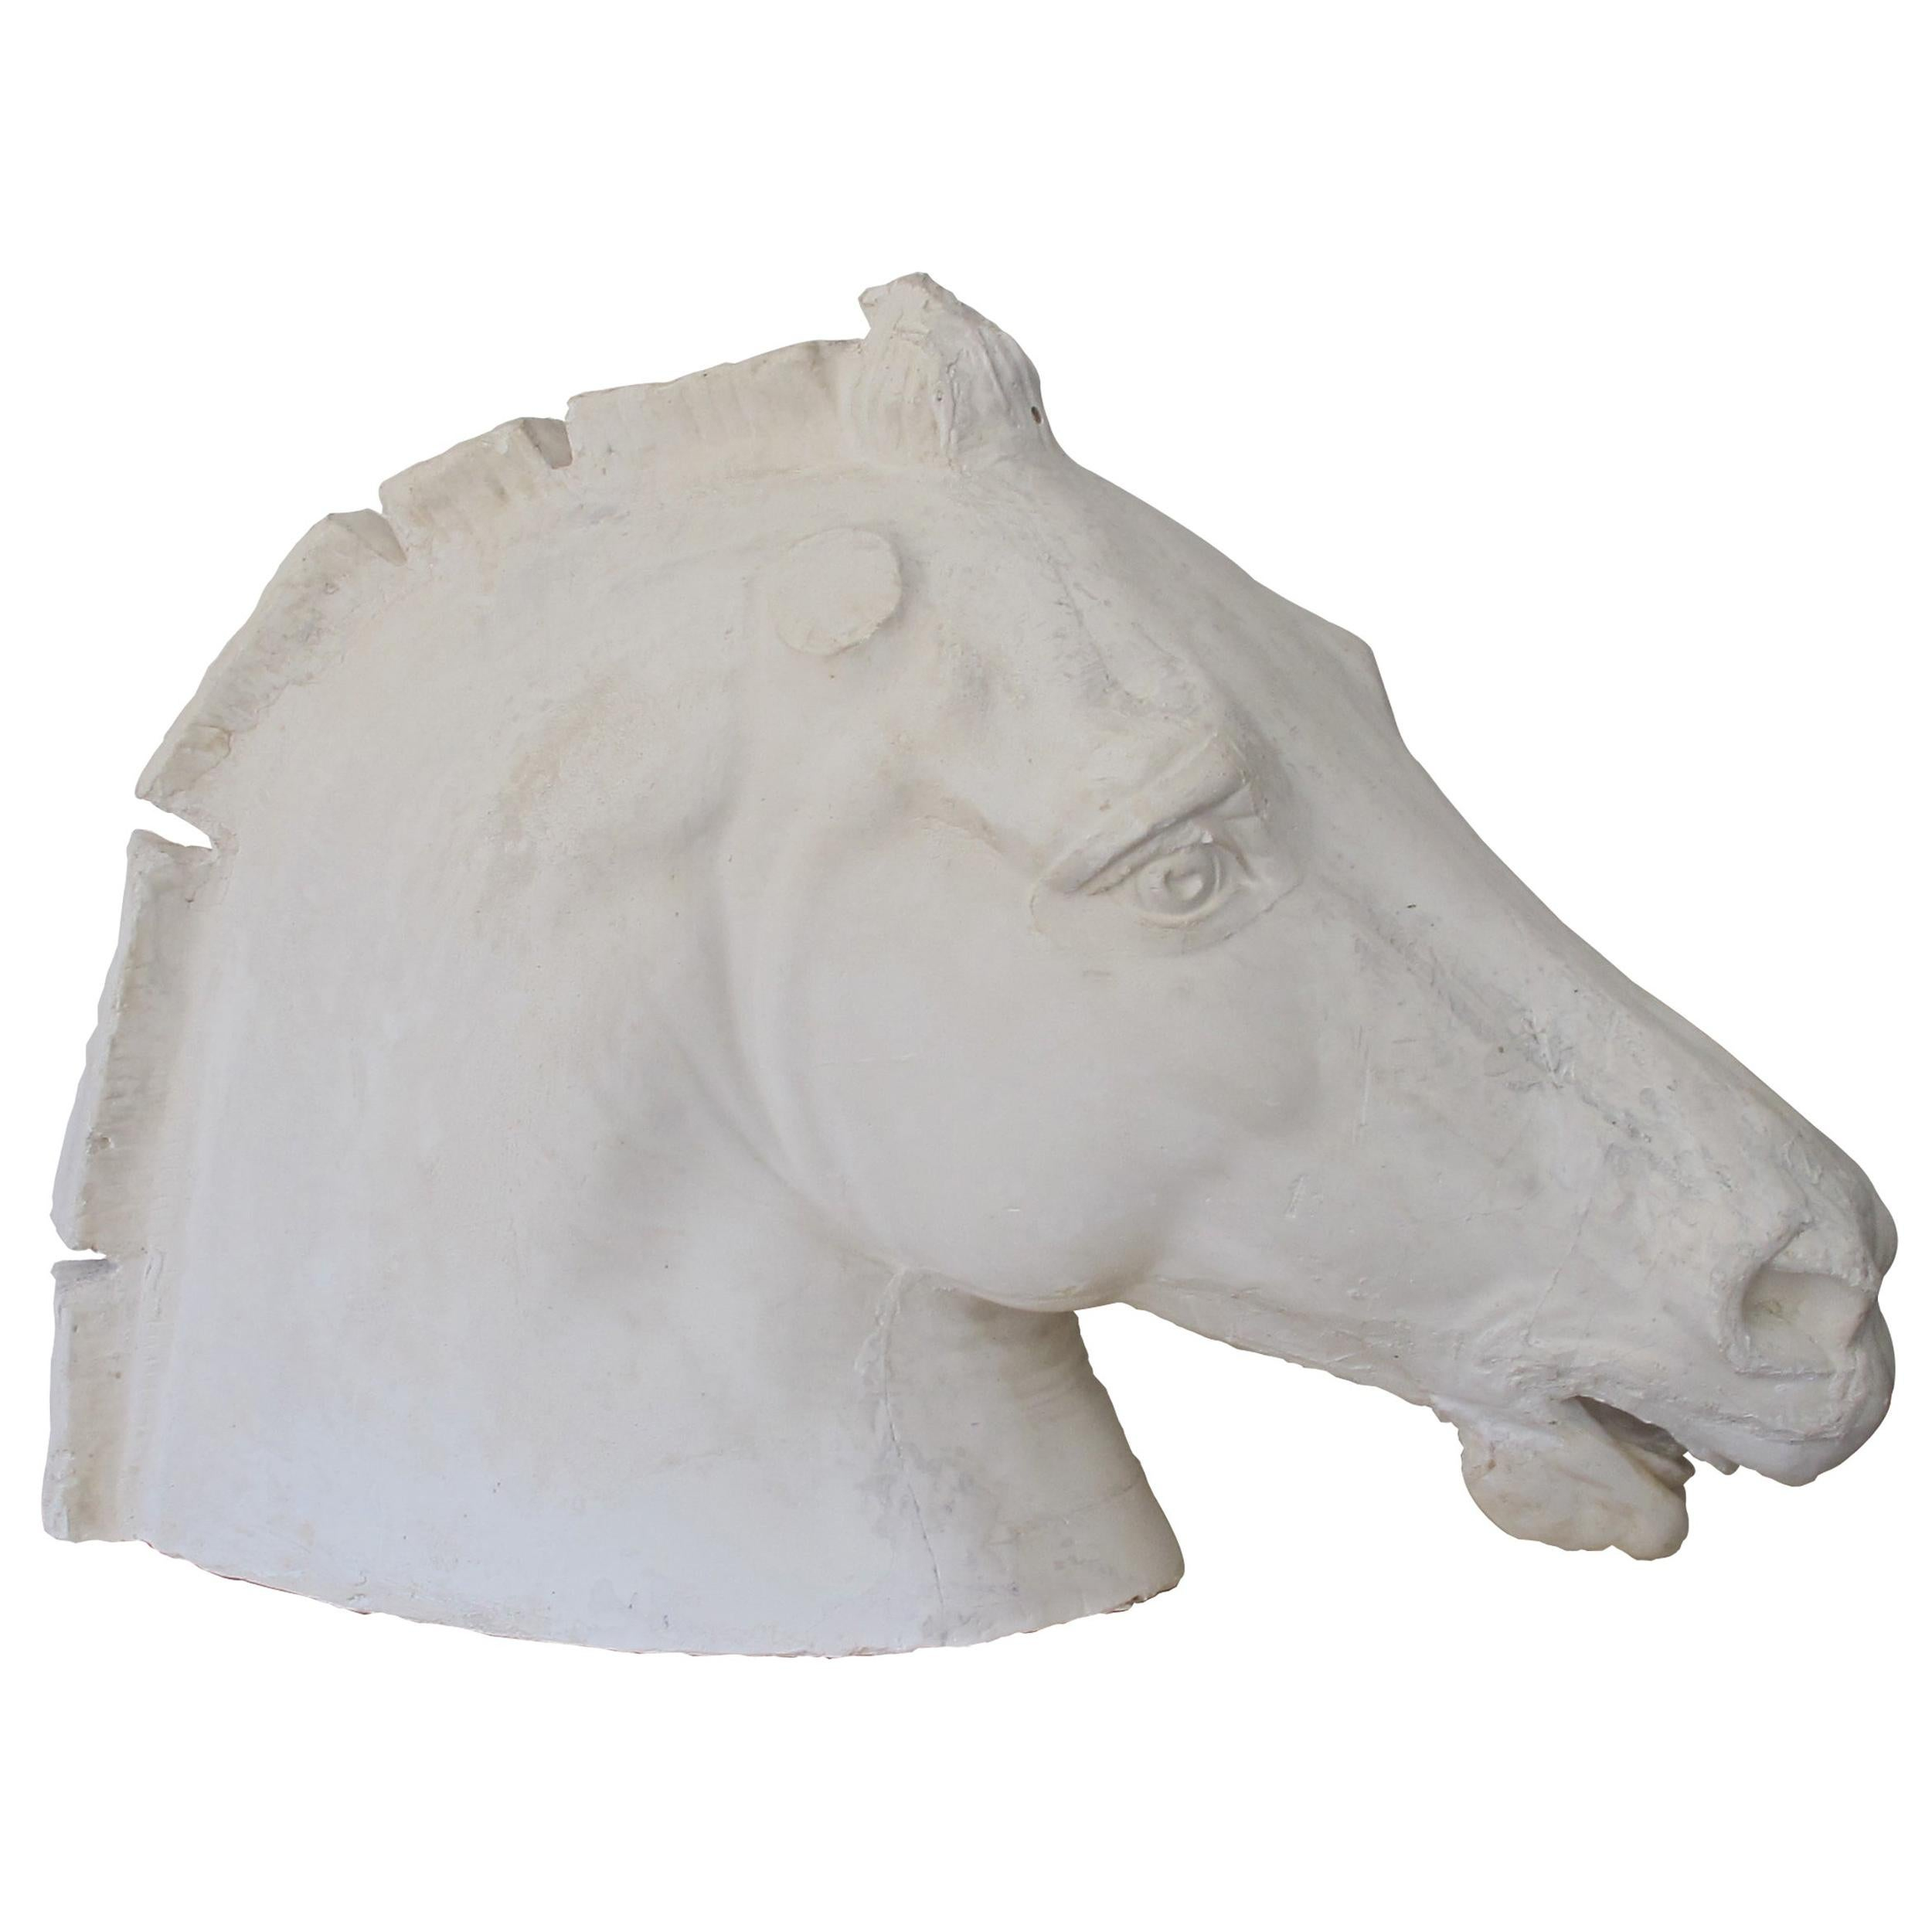 Early 20th Century French Life-Size Plaster Horse Head Inspired by The Parthenon